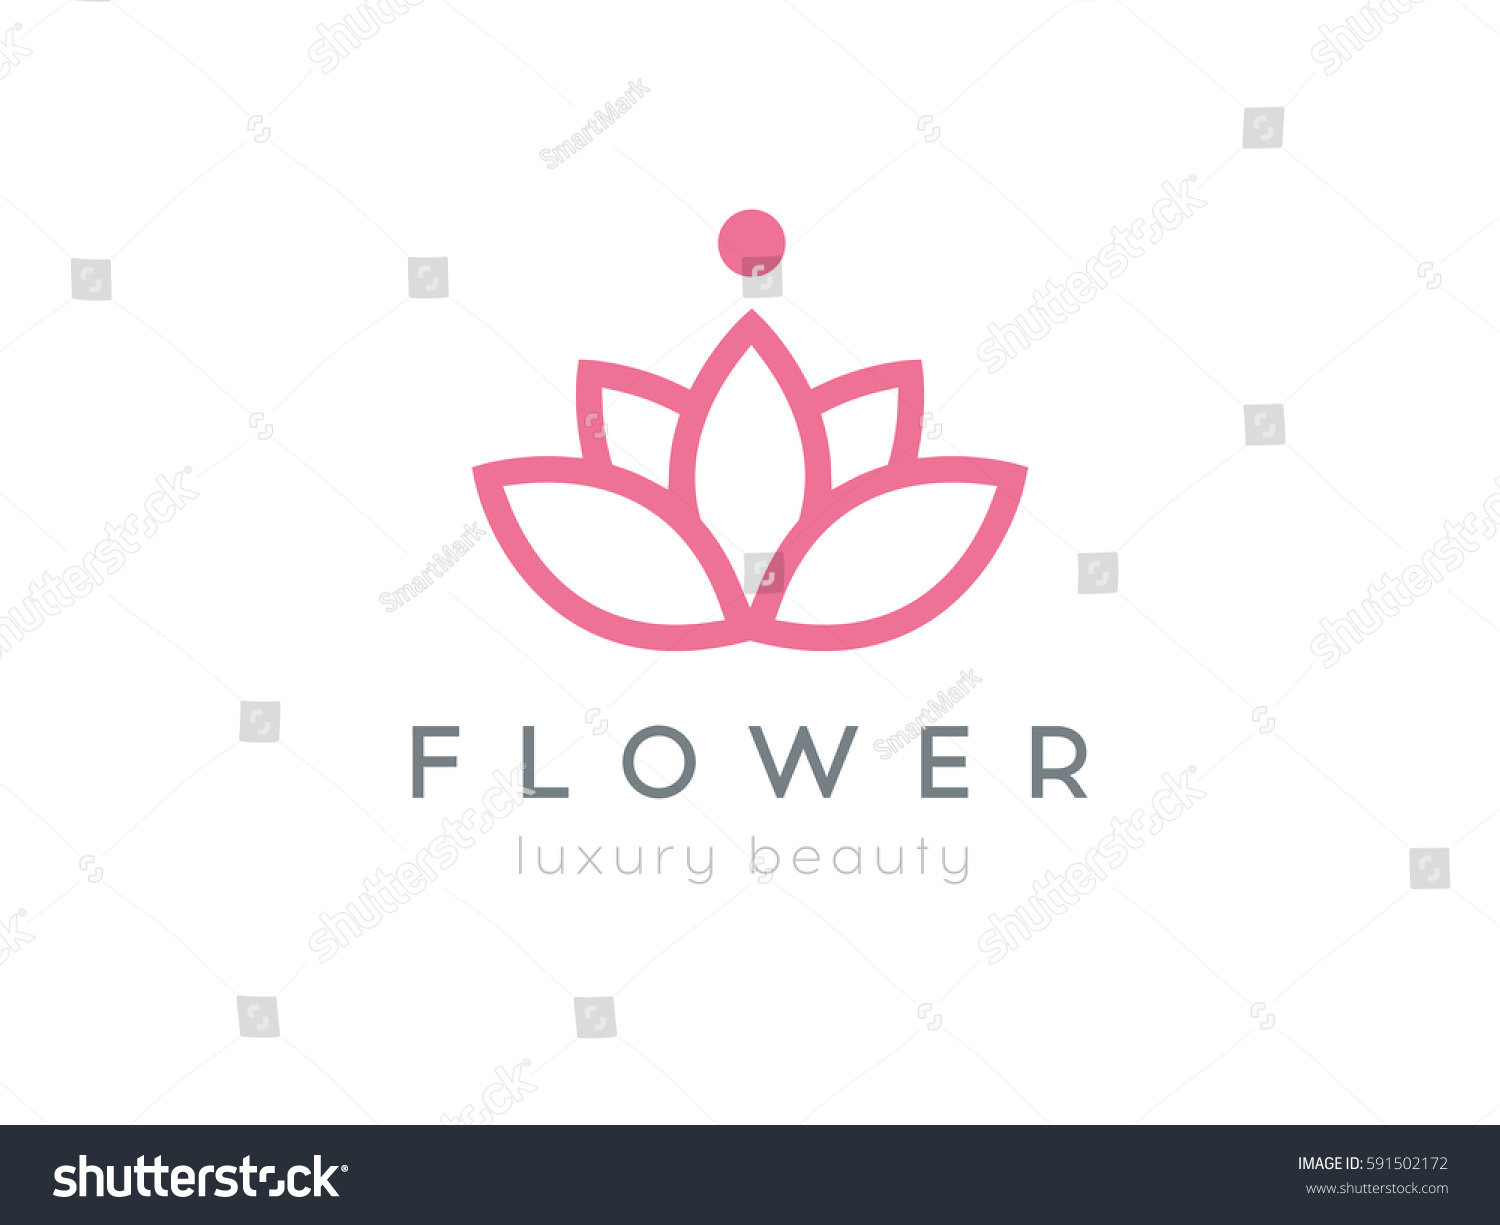 Flower logo abstract beauty salon cosmetics stock vector for Abstract beauty salon